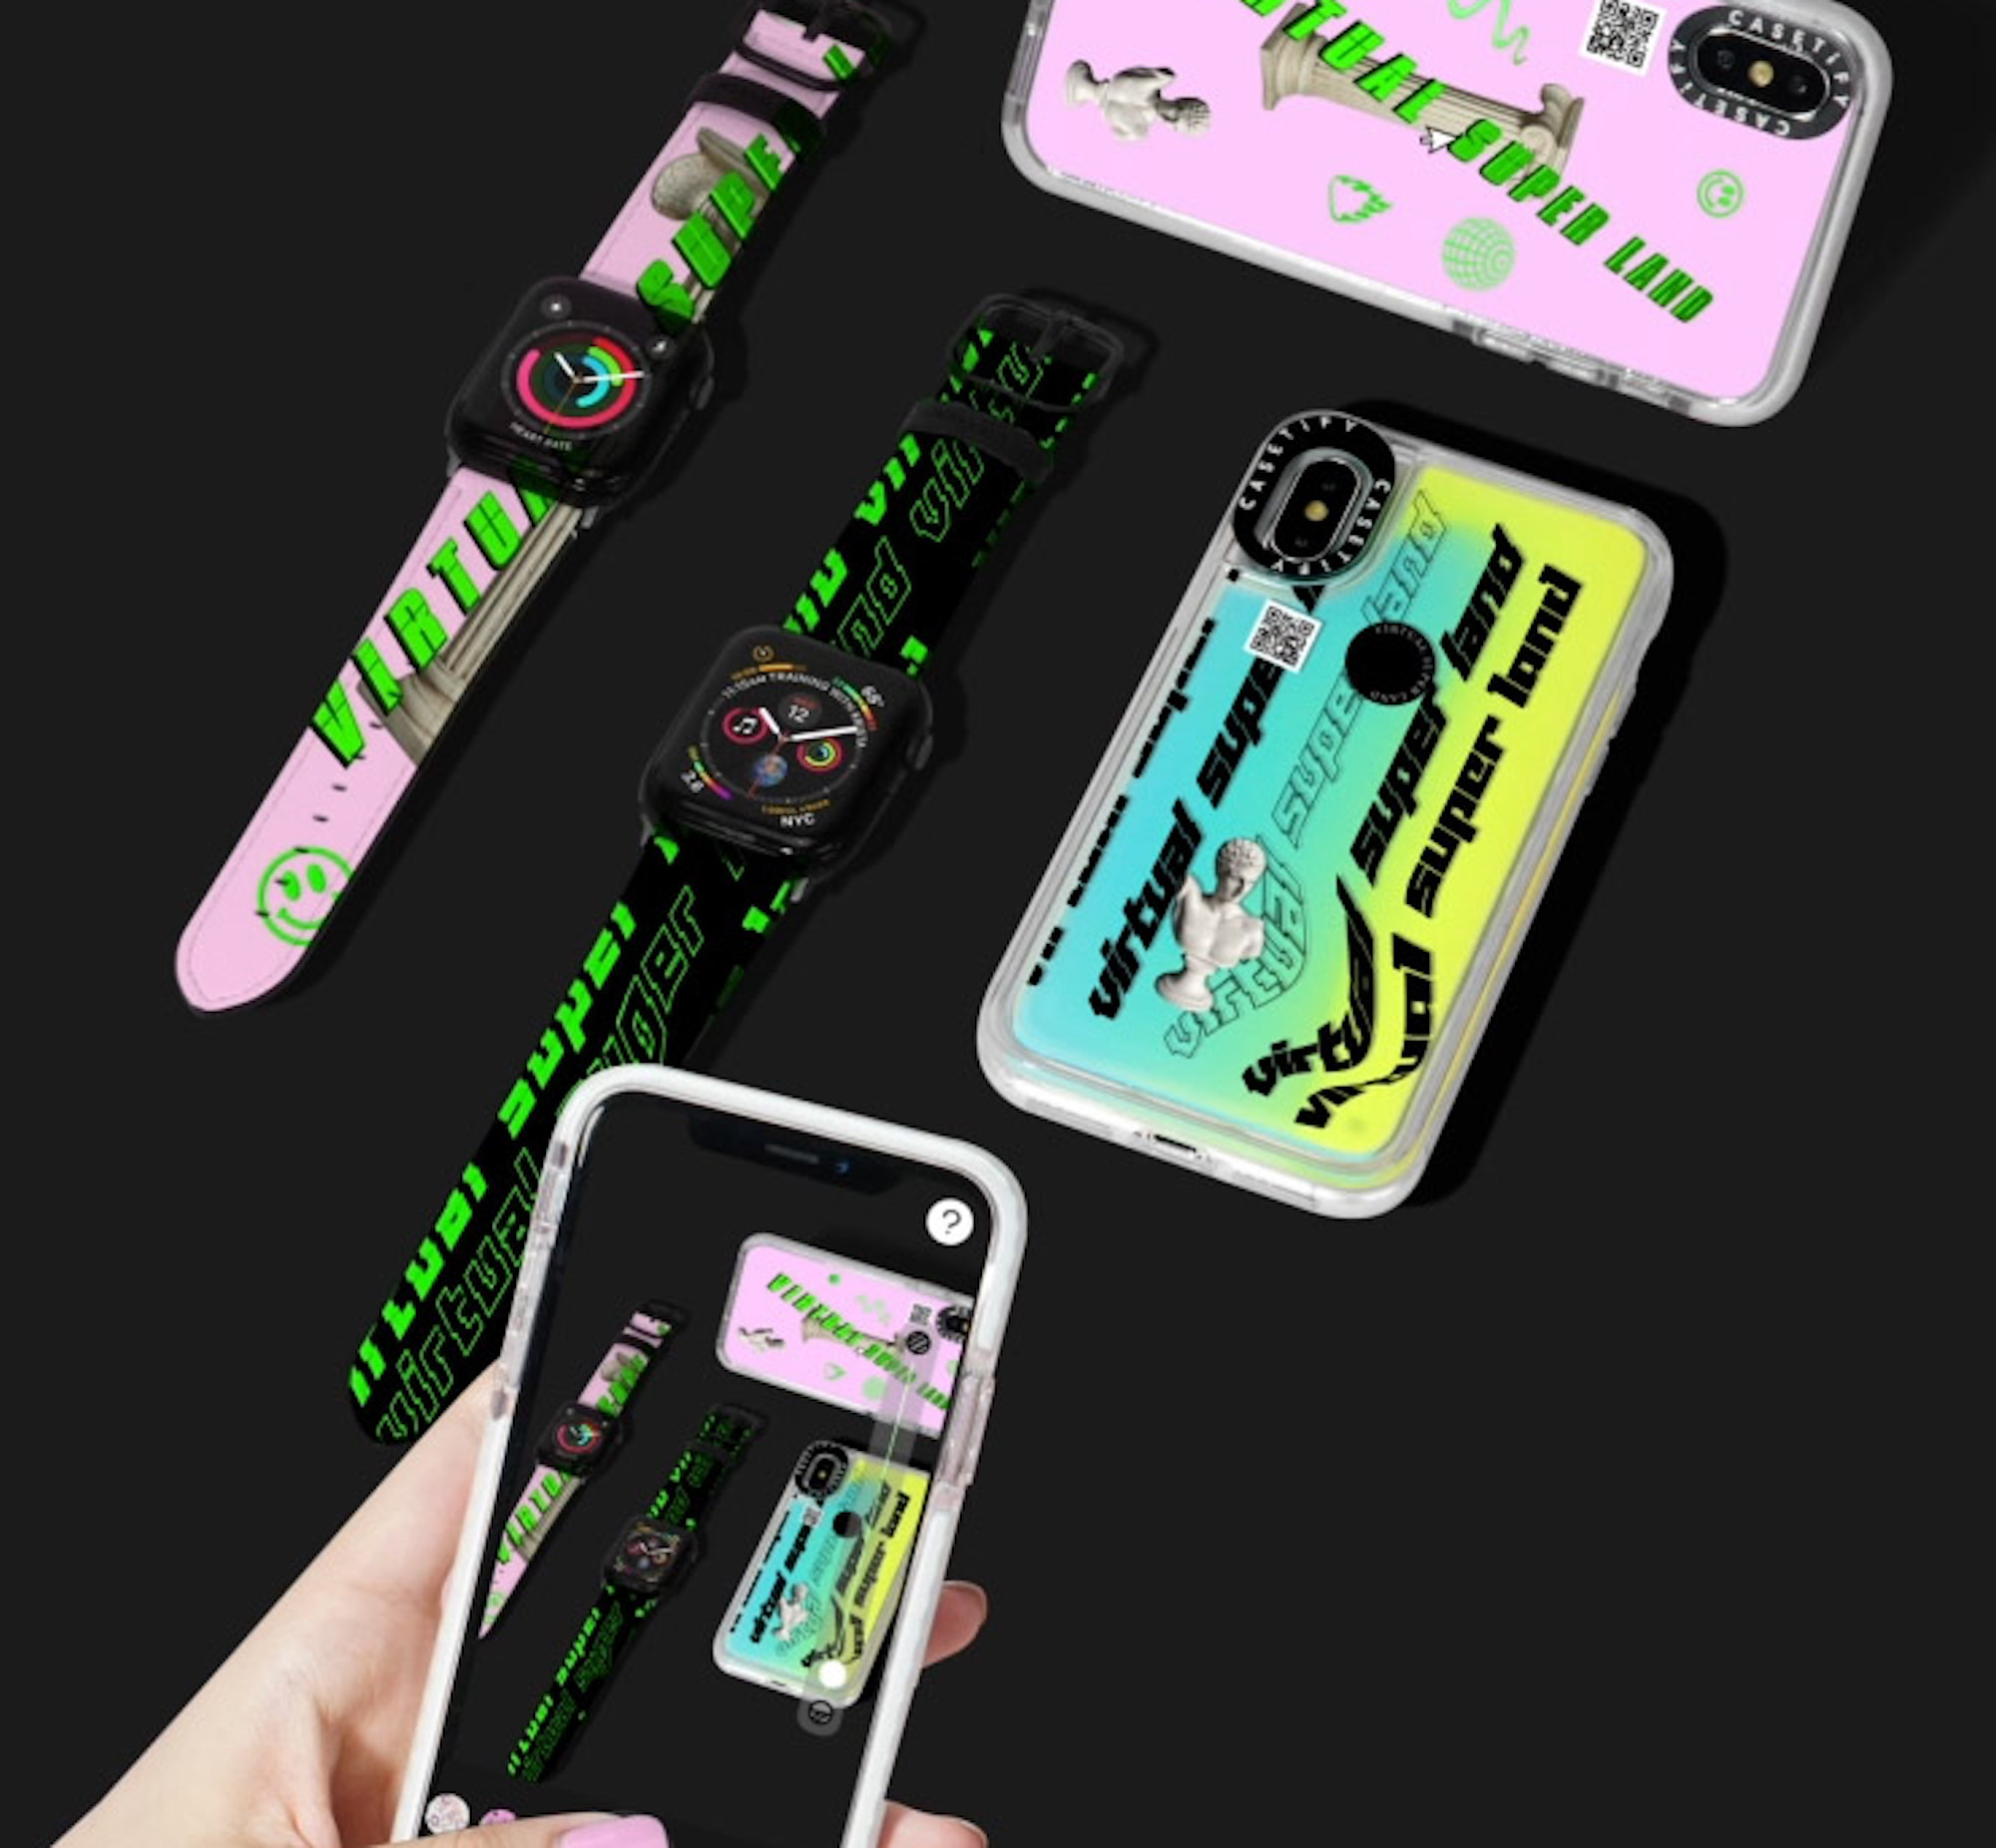 Wonderland commercial virtual super land x CASETiFY phone cases and watch straps and app